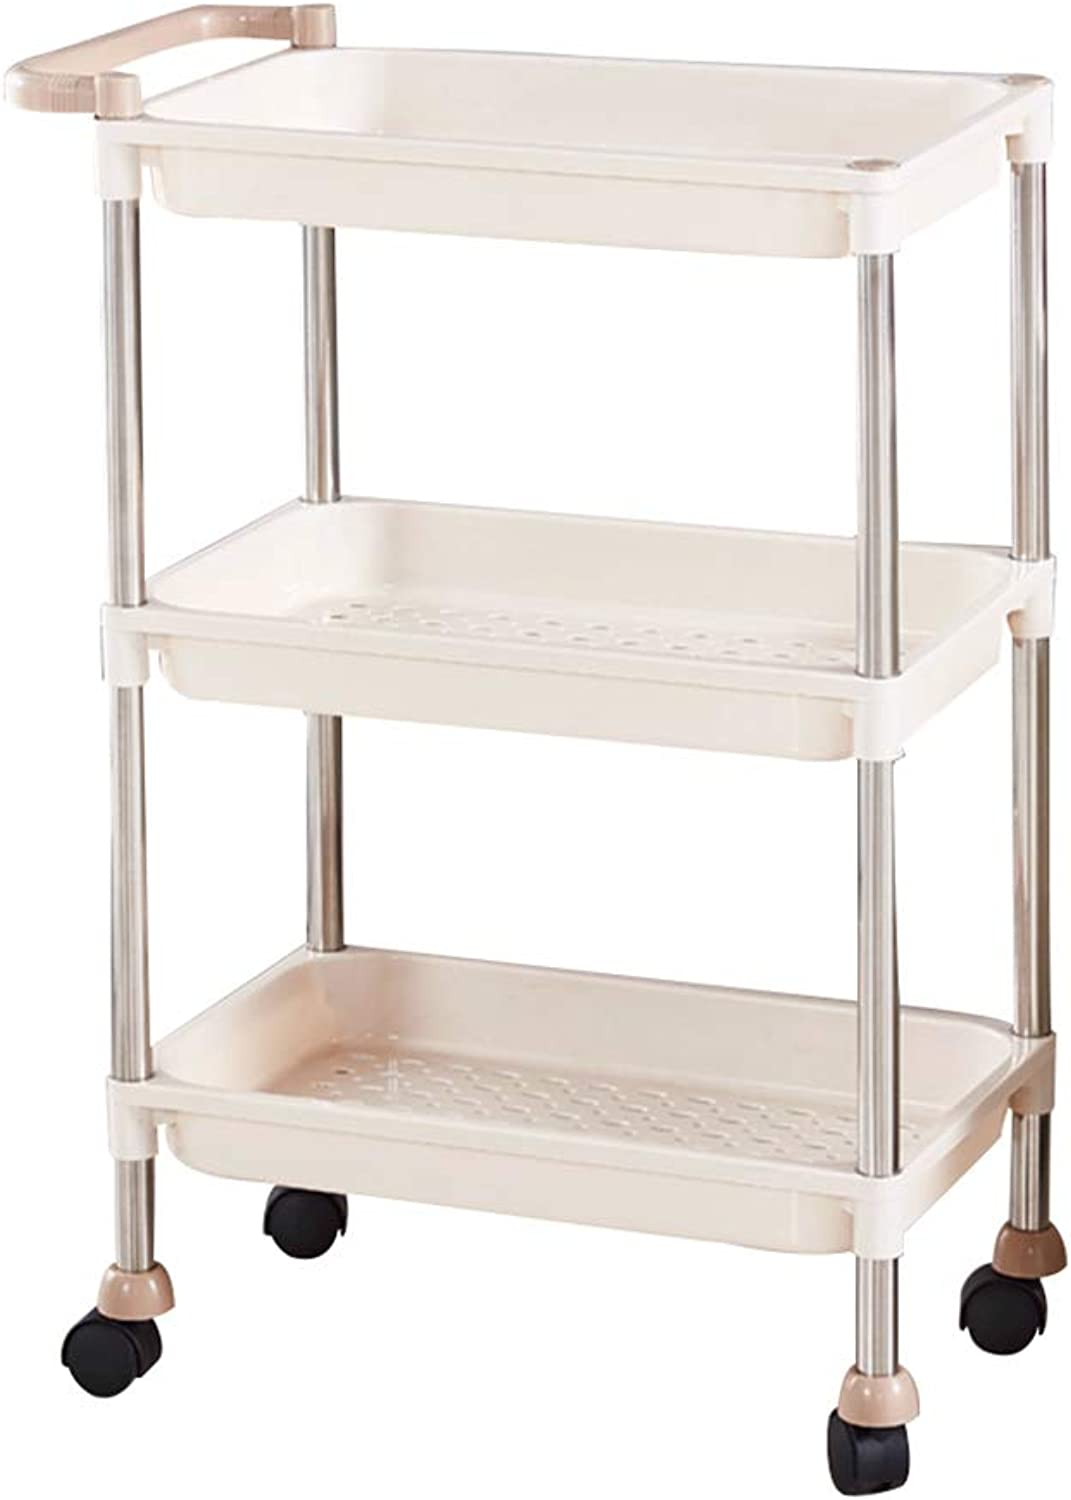 Serving Trolley Cart Movable Kitchen 3 Tier Stainless Steel Environmental Predection PP with Guardrail Square Plastic Wheel, Carrying Capacity 30 Kg, 4 colors (color   A, Size   46 x 28 x 73 cm)